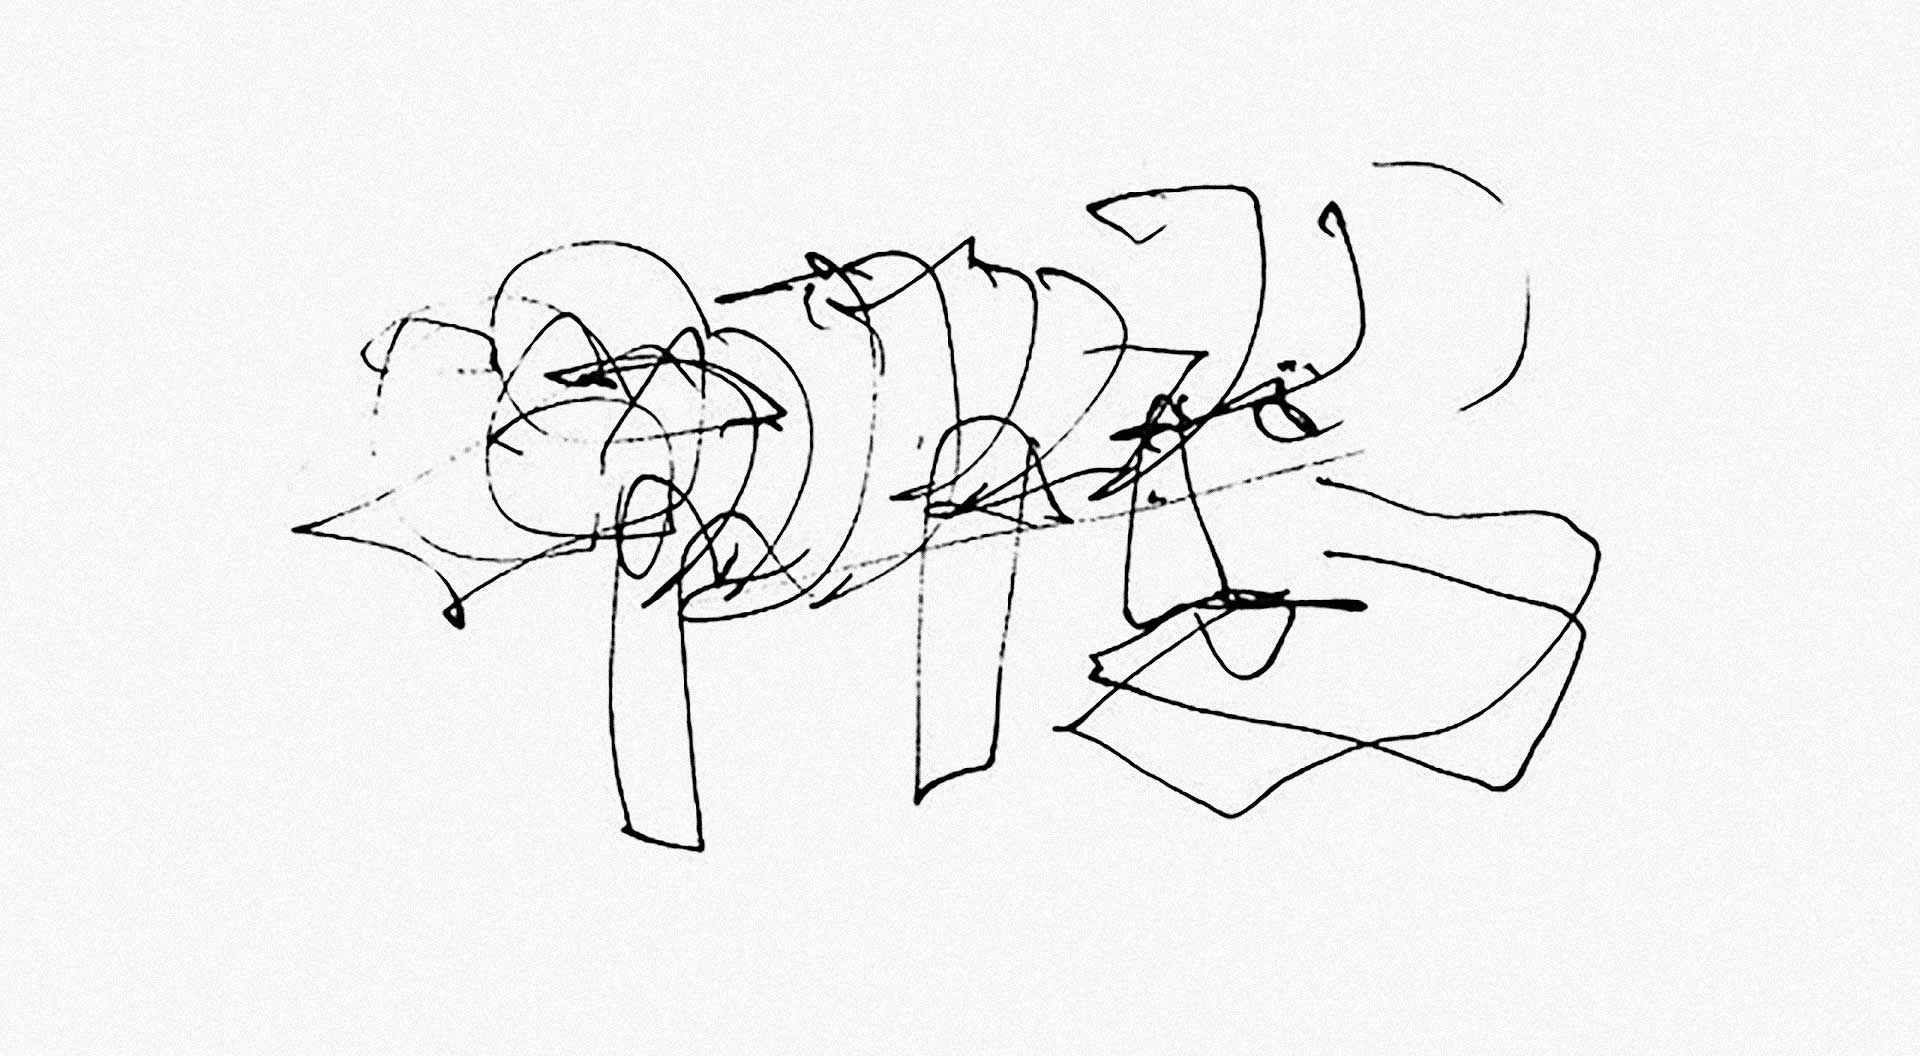 Frank Gehry Sketch of the Tornado design for the Issey Miyake Tribeca.